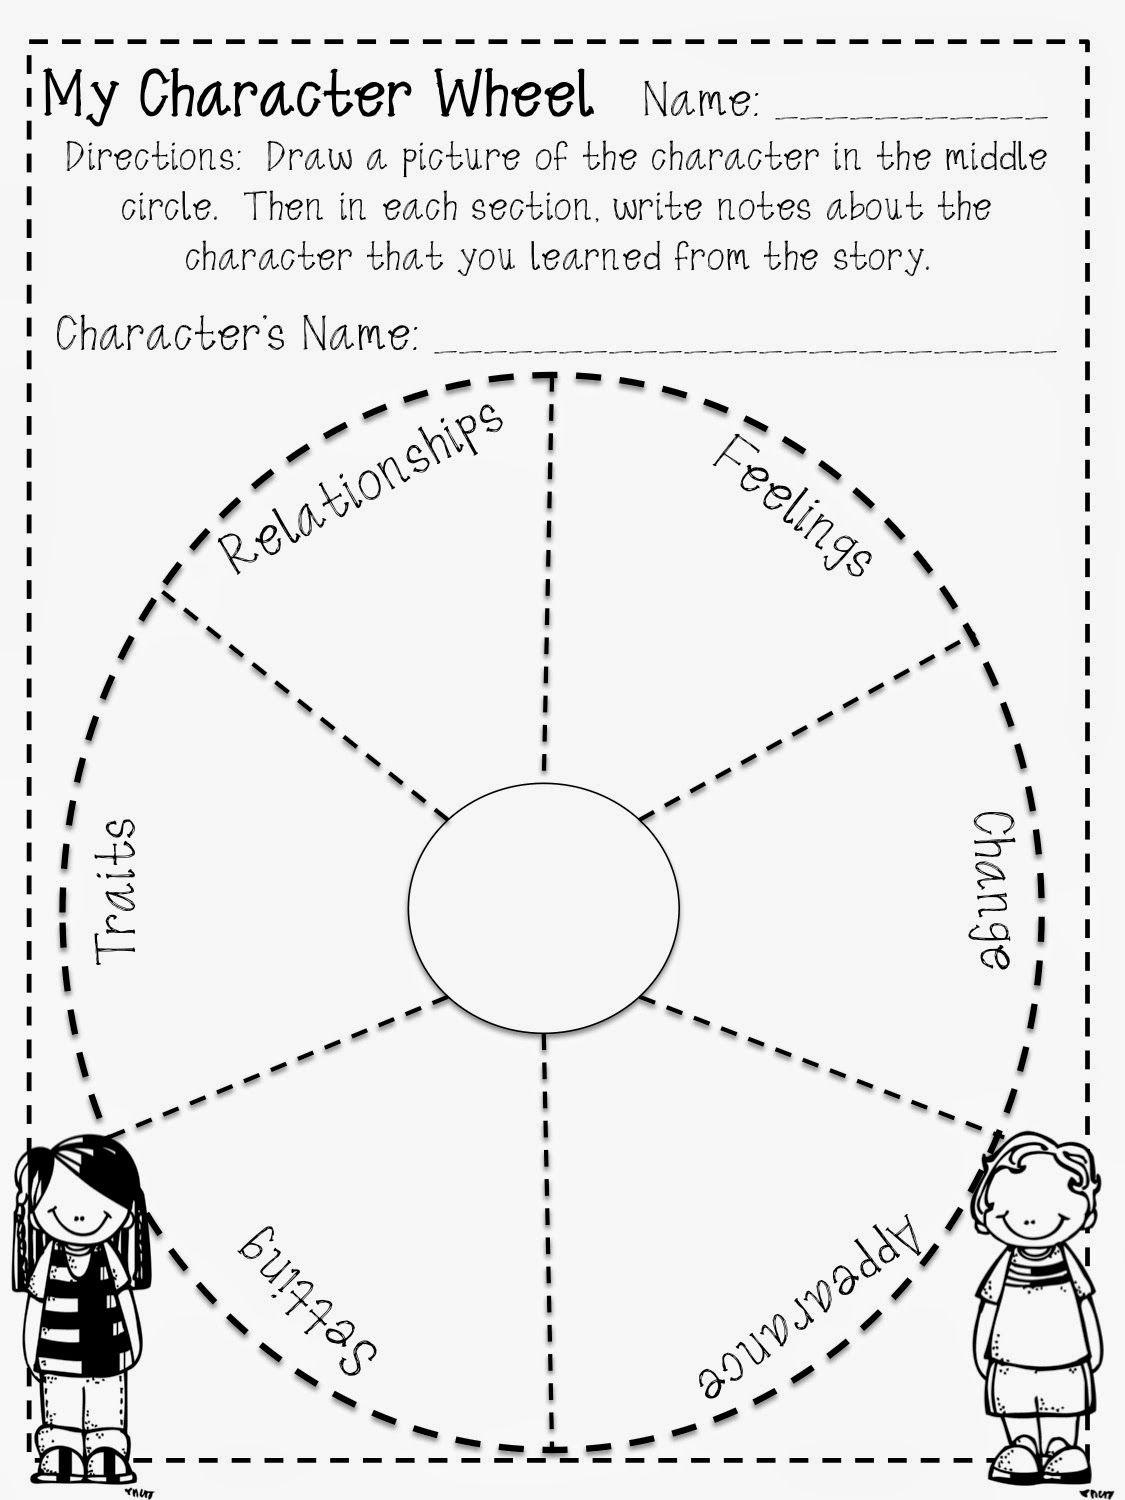 Fun Character Wheel Printable For Any Book Free